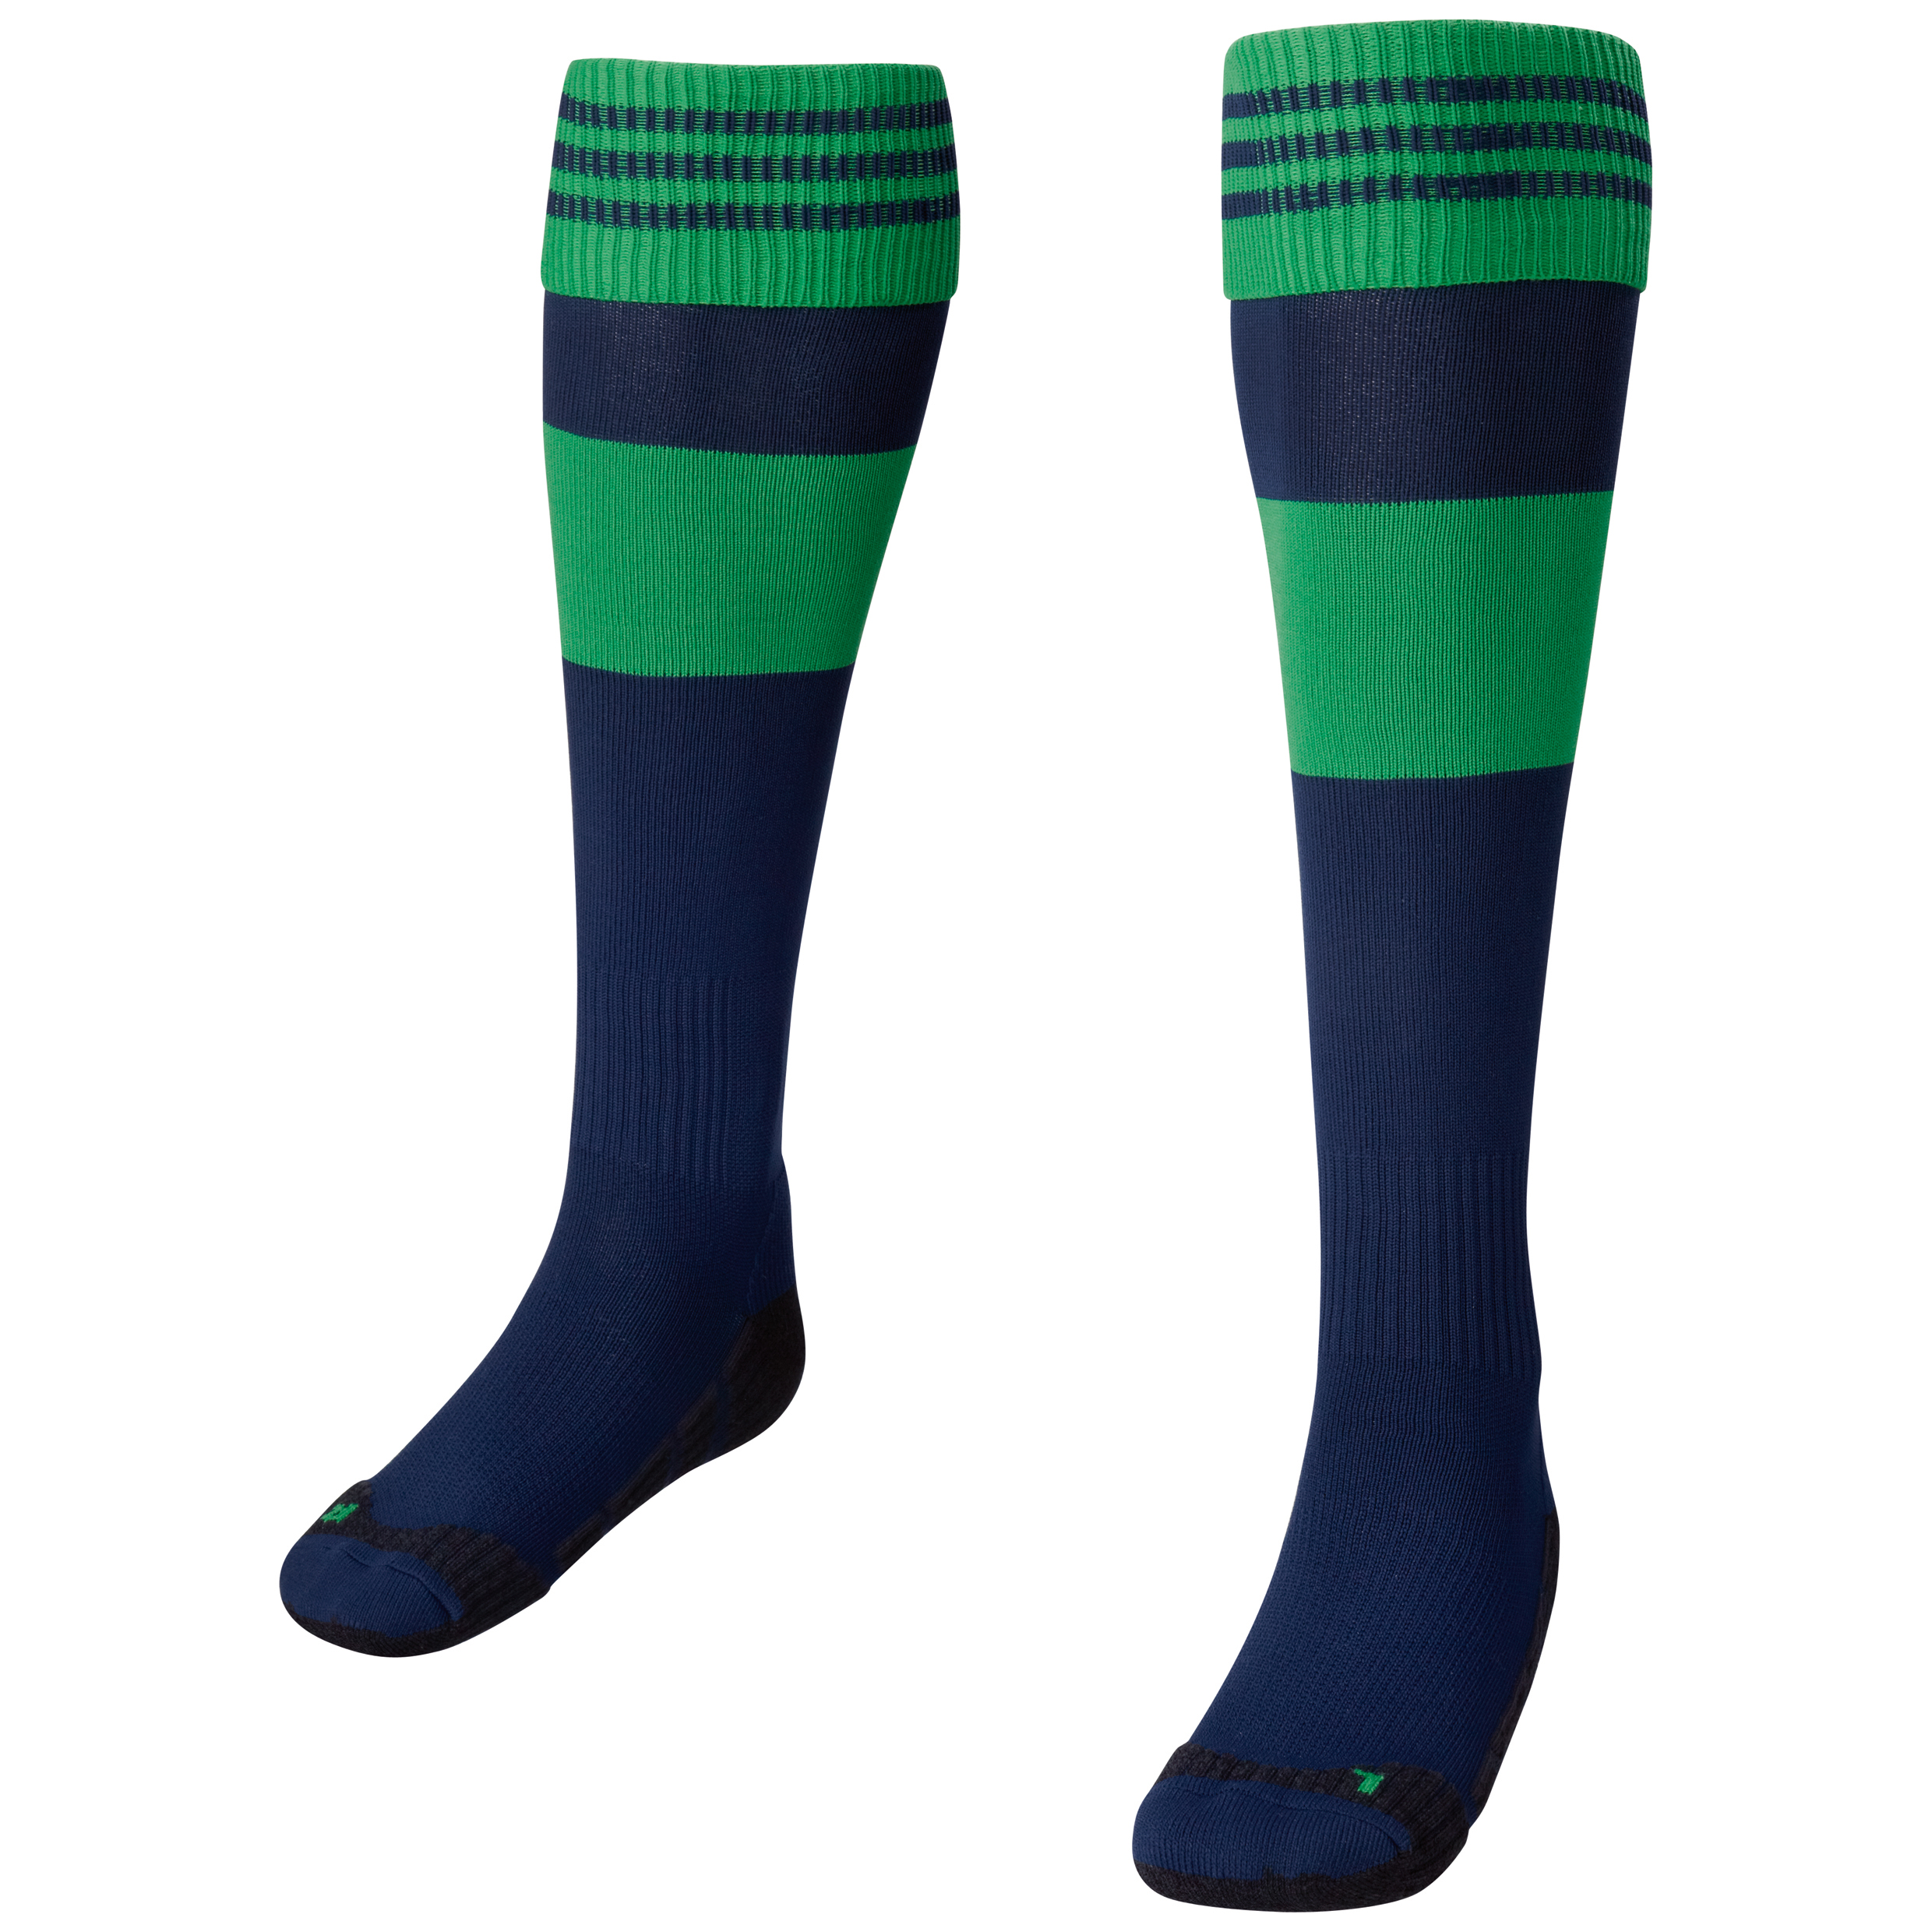 British & Irish Lions Home Socks 2013